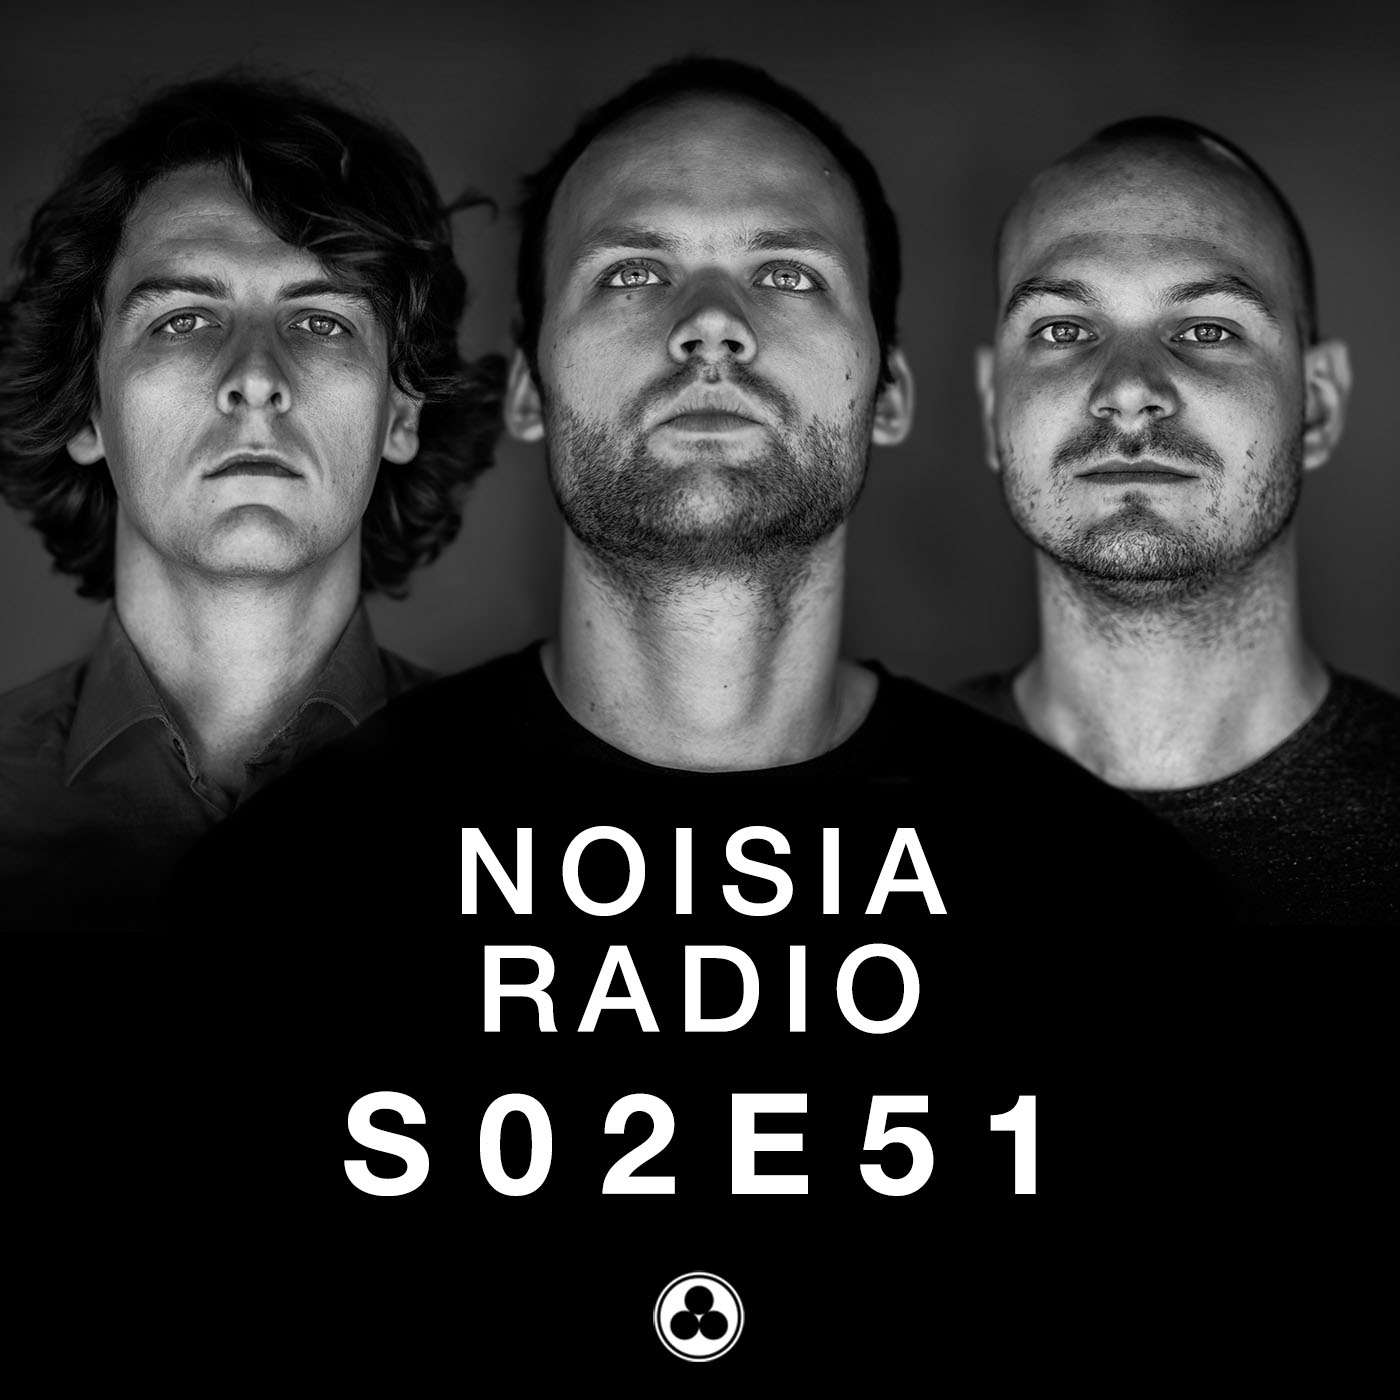 Noisia Radio S02E51